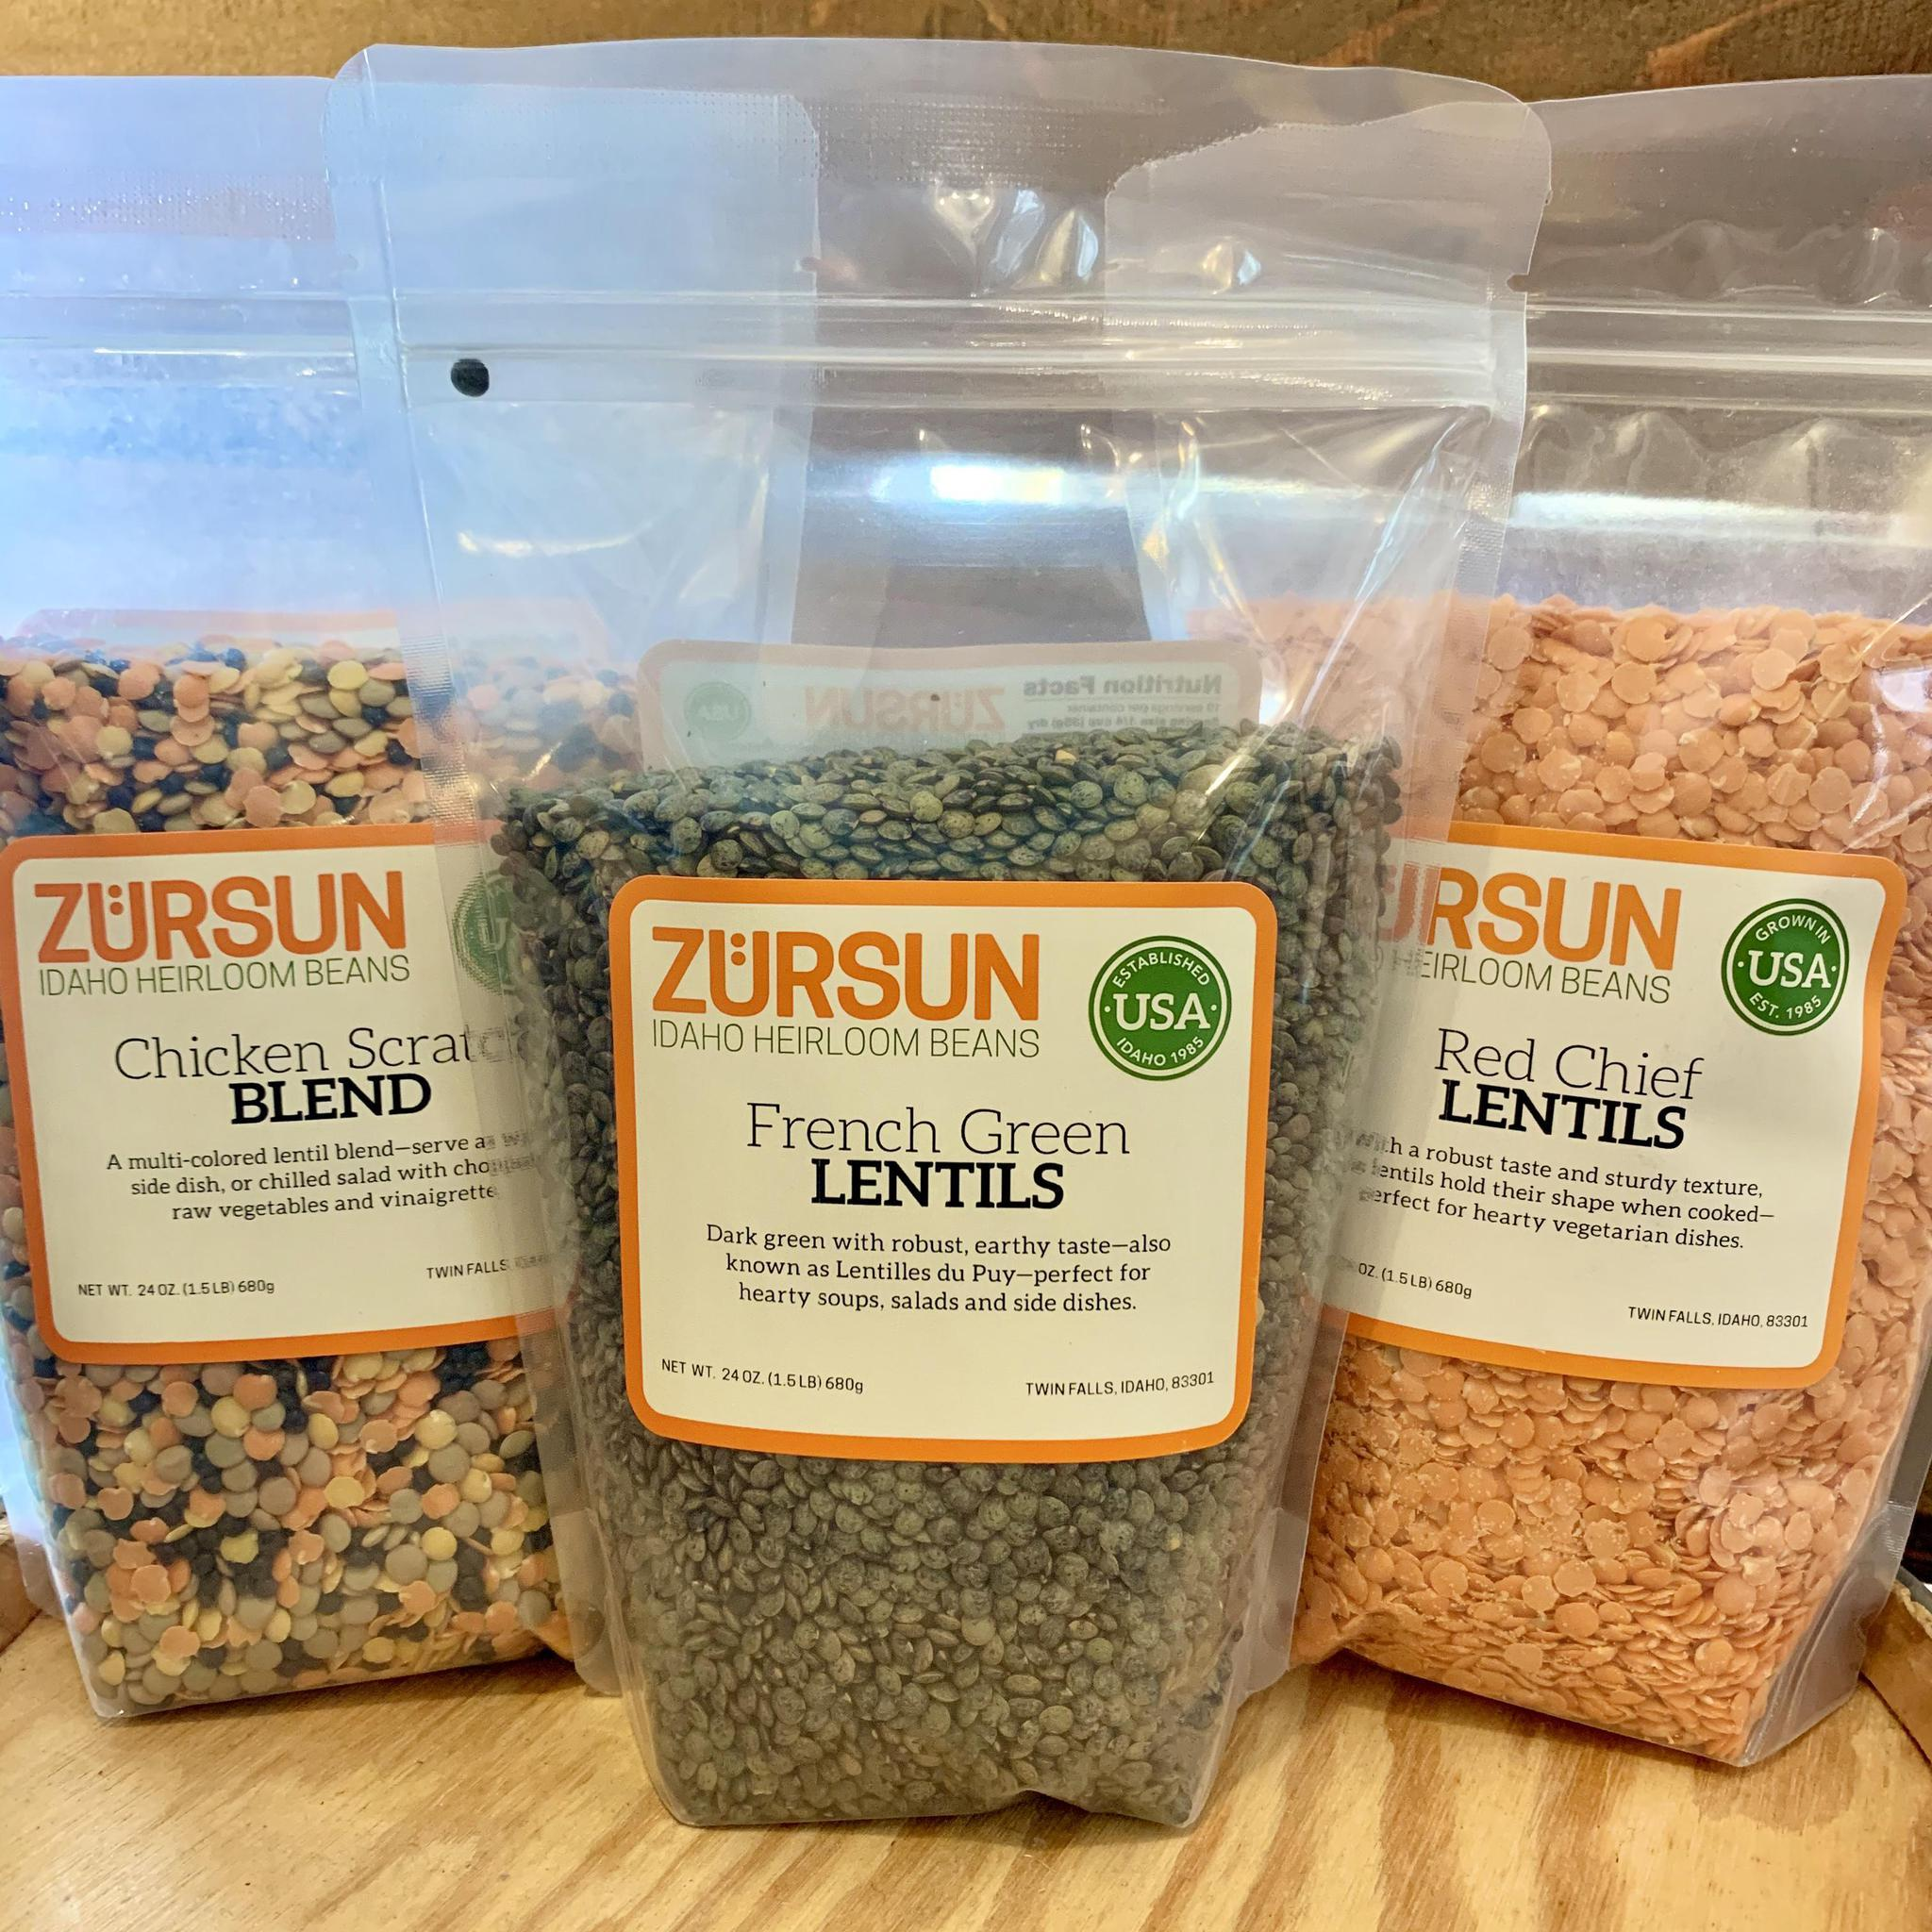 Lentil Blends by Zürsun Idaho Heirloom Beans French Green Lentil